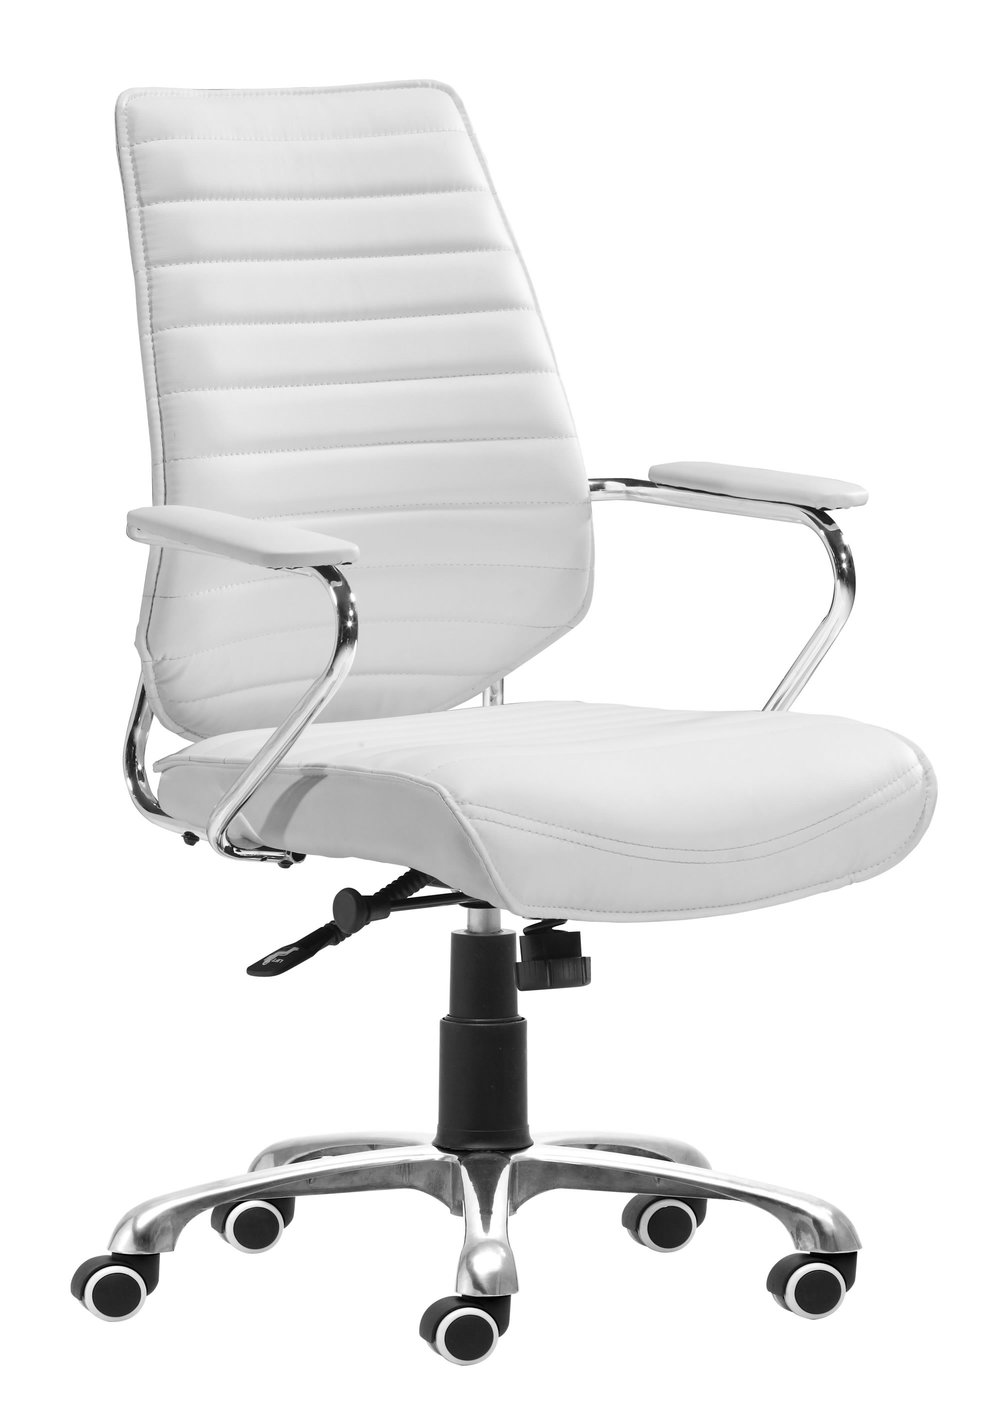 Zuo Modern Contemporary - Enterprise Low Back Office Chair White